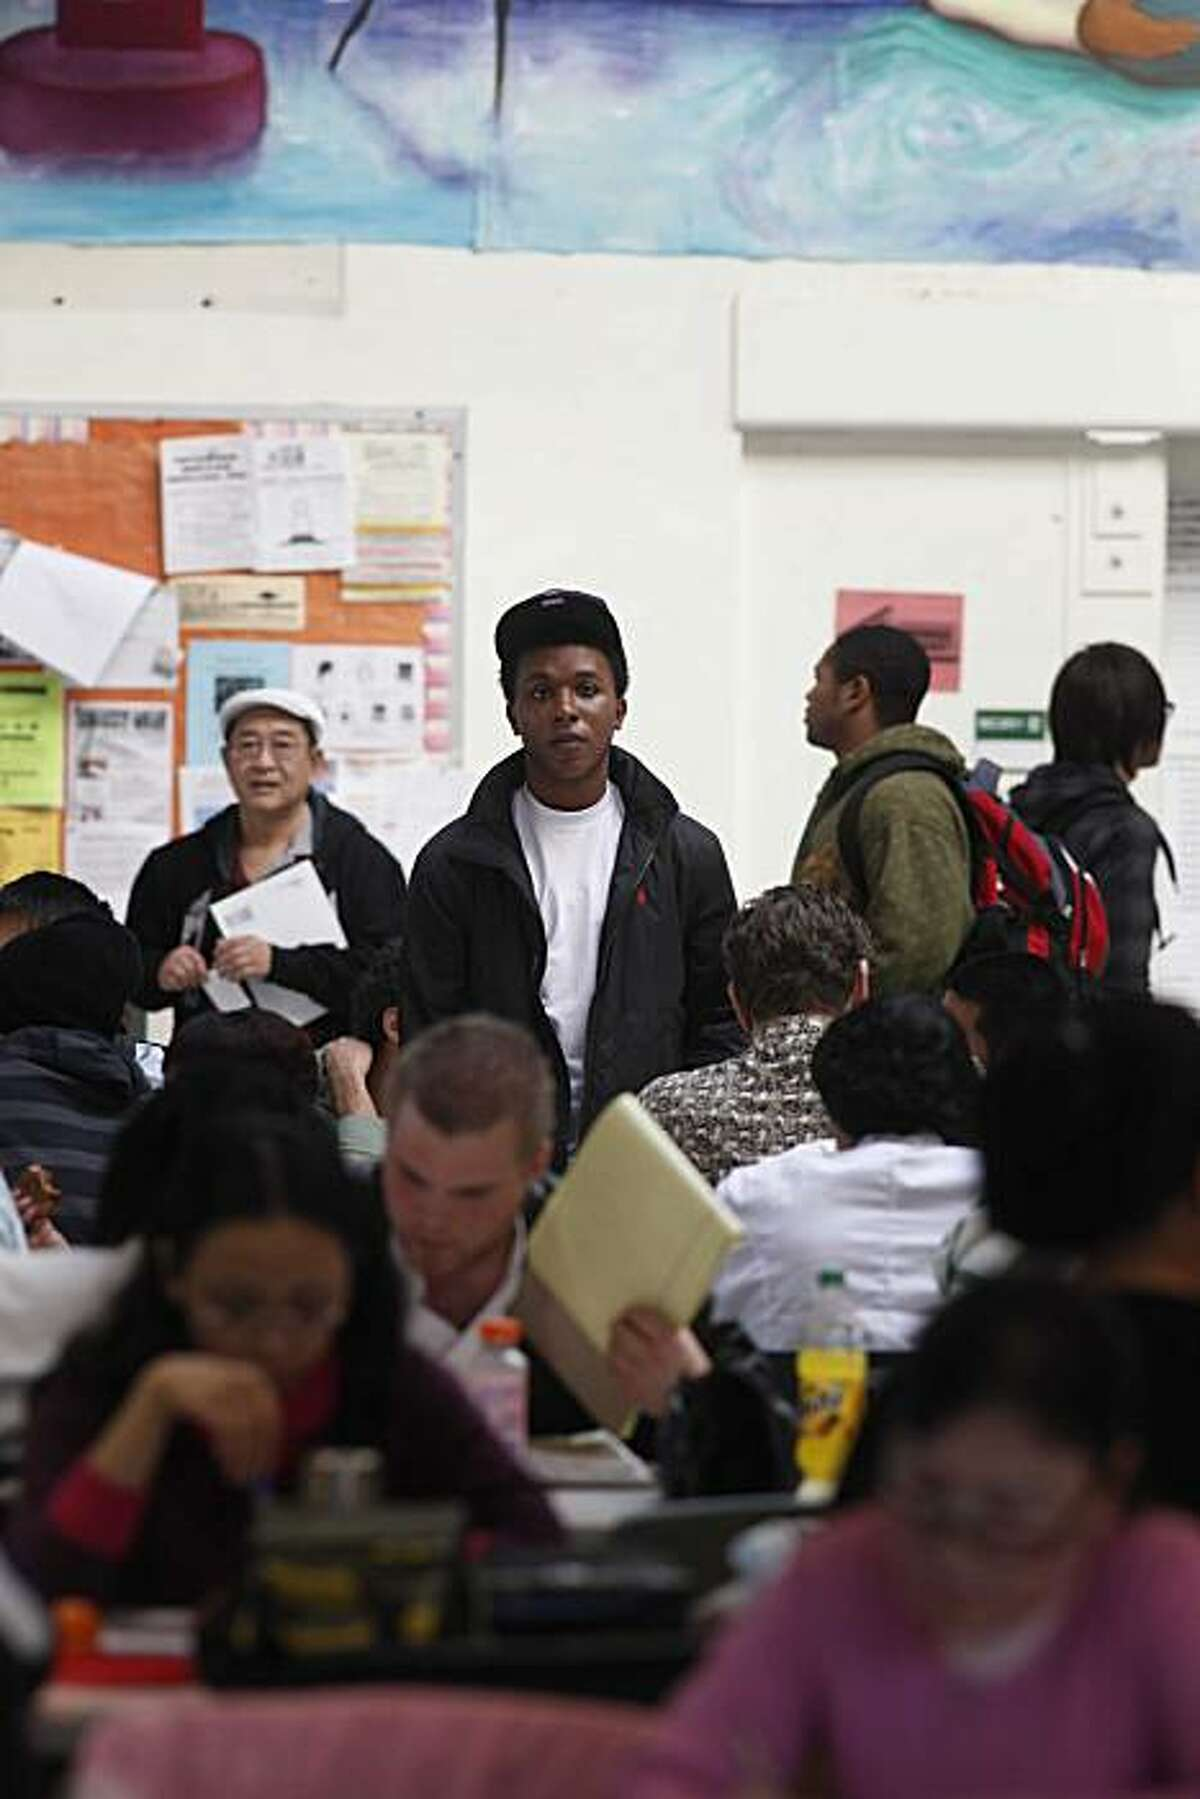 Obe Ugbeyan, 20, stands for a portrait among his generation of students at Laney College on Monday Feb. 7, 2011 in Oakland, Calif. Ugbeyan said,